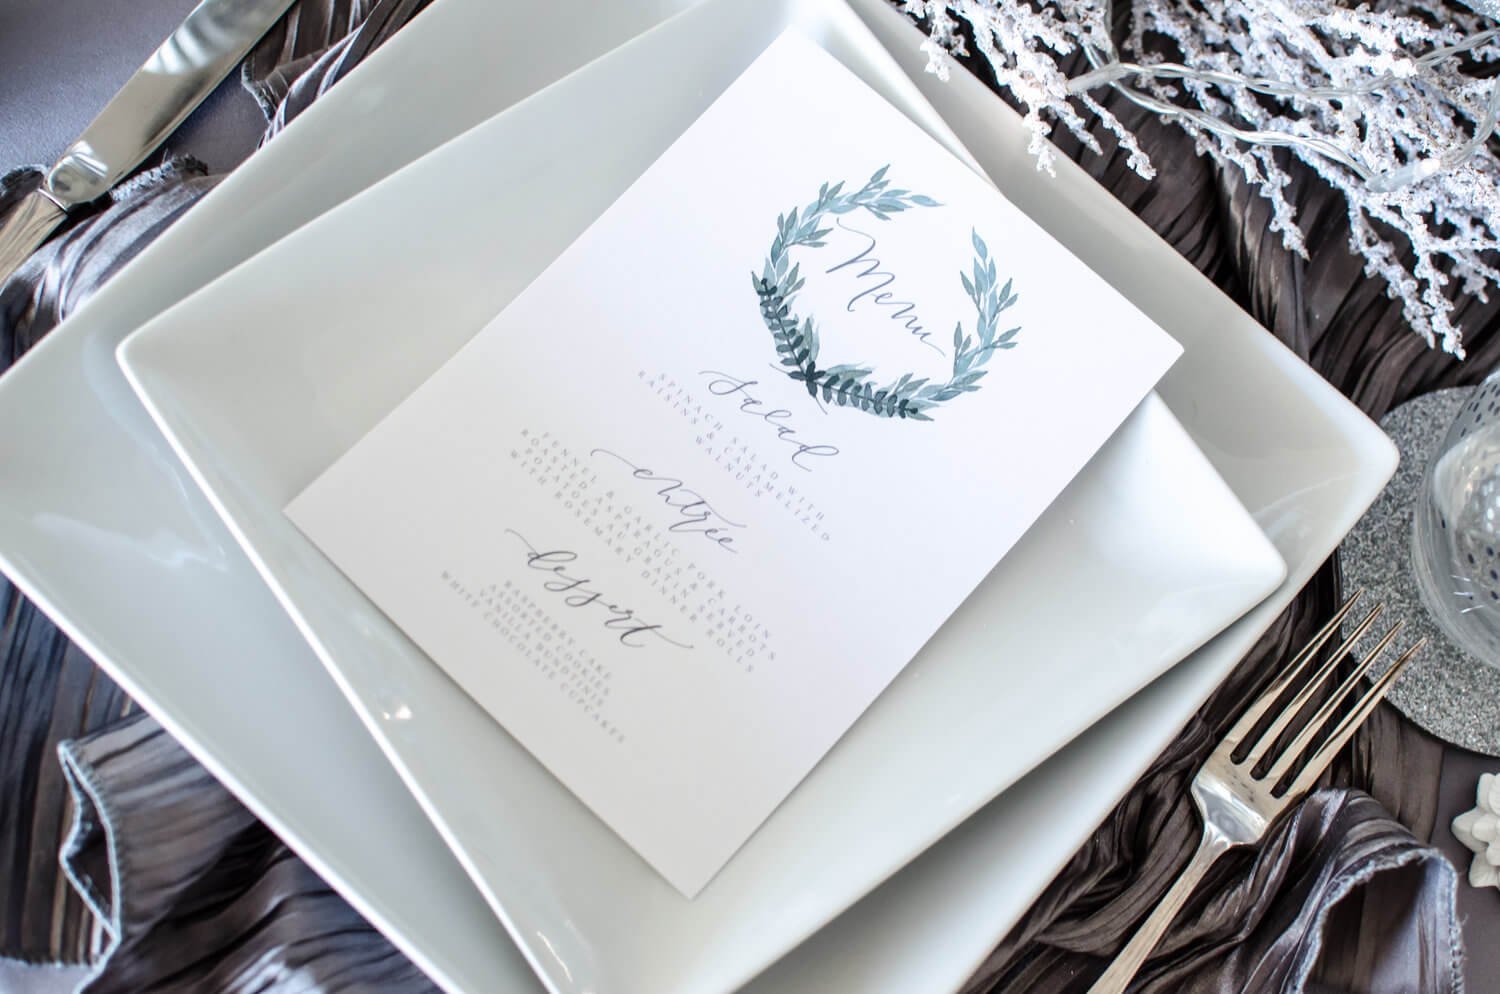 Pretty menu cards with calligraphy for a winter party. See more ideas from this Winter Wonderland themed Bridal Shower Inspiration created by Mint Event Design www.minteventdesign.com #winterweddingideas #weddingwedding #bridalshowerideas #winterwonderland #calligraphy #menudesign